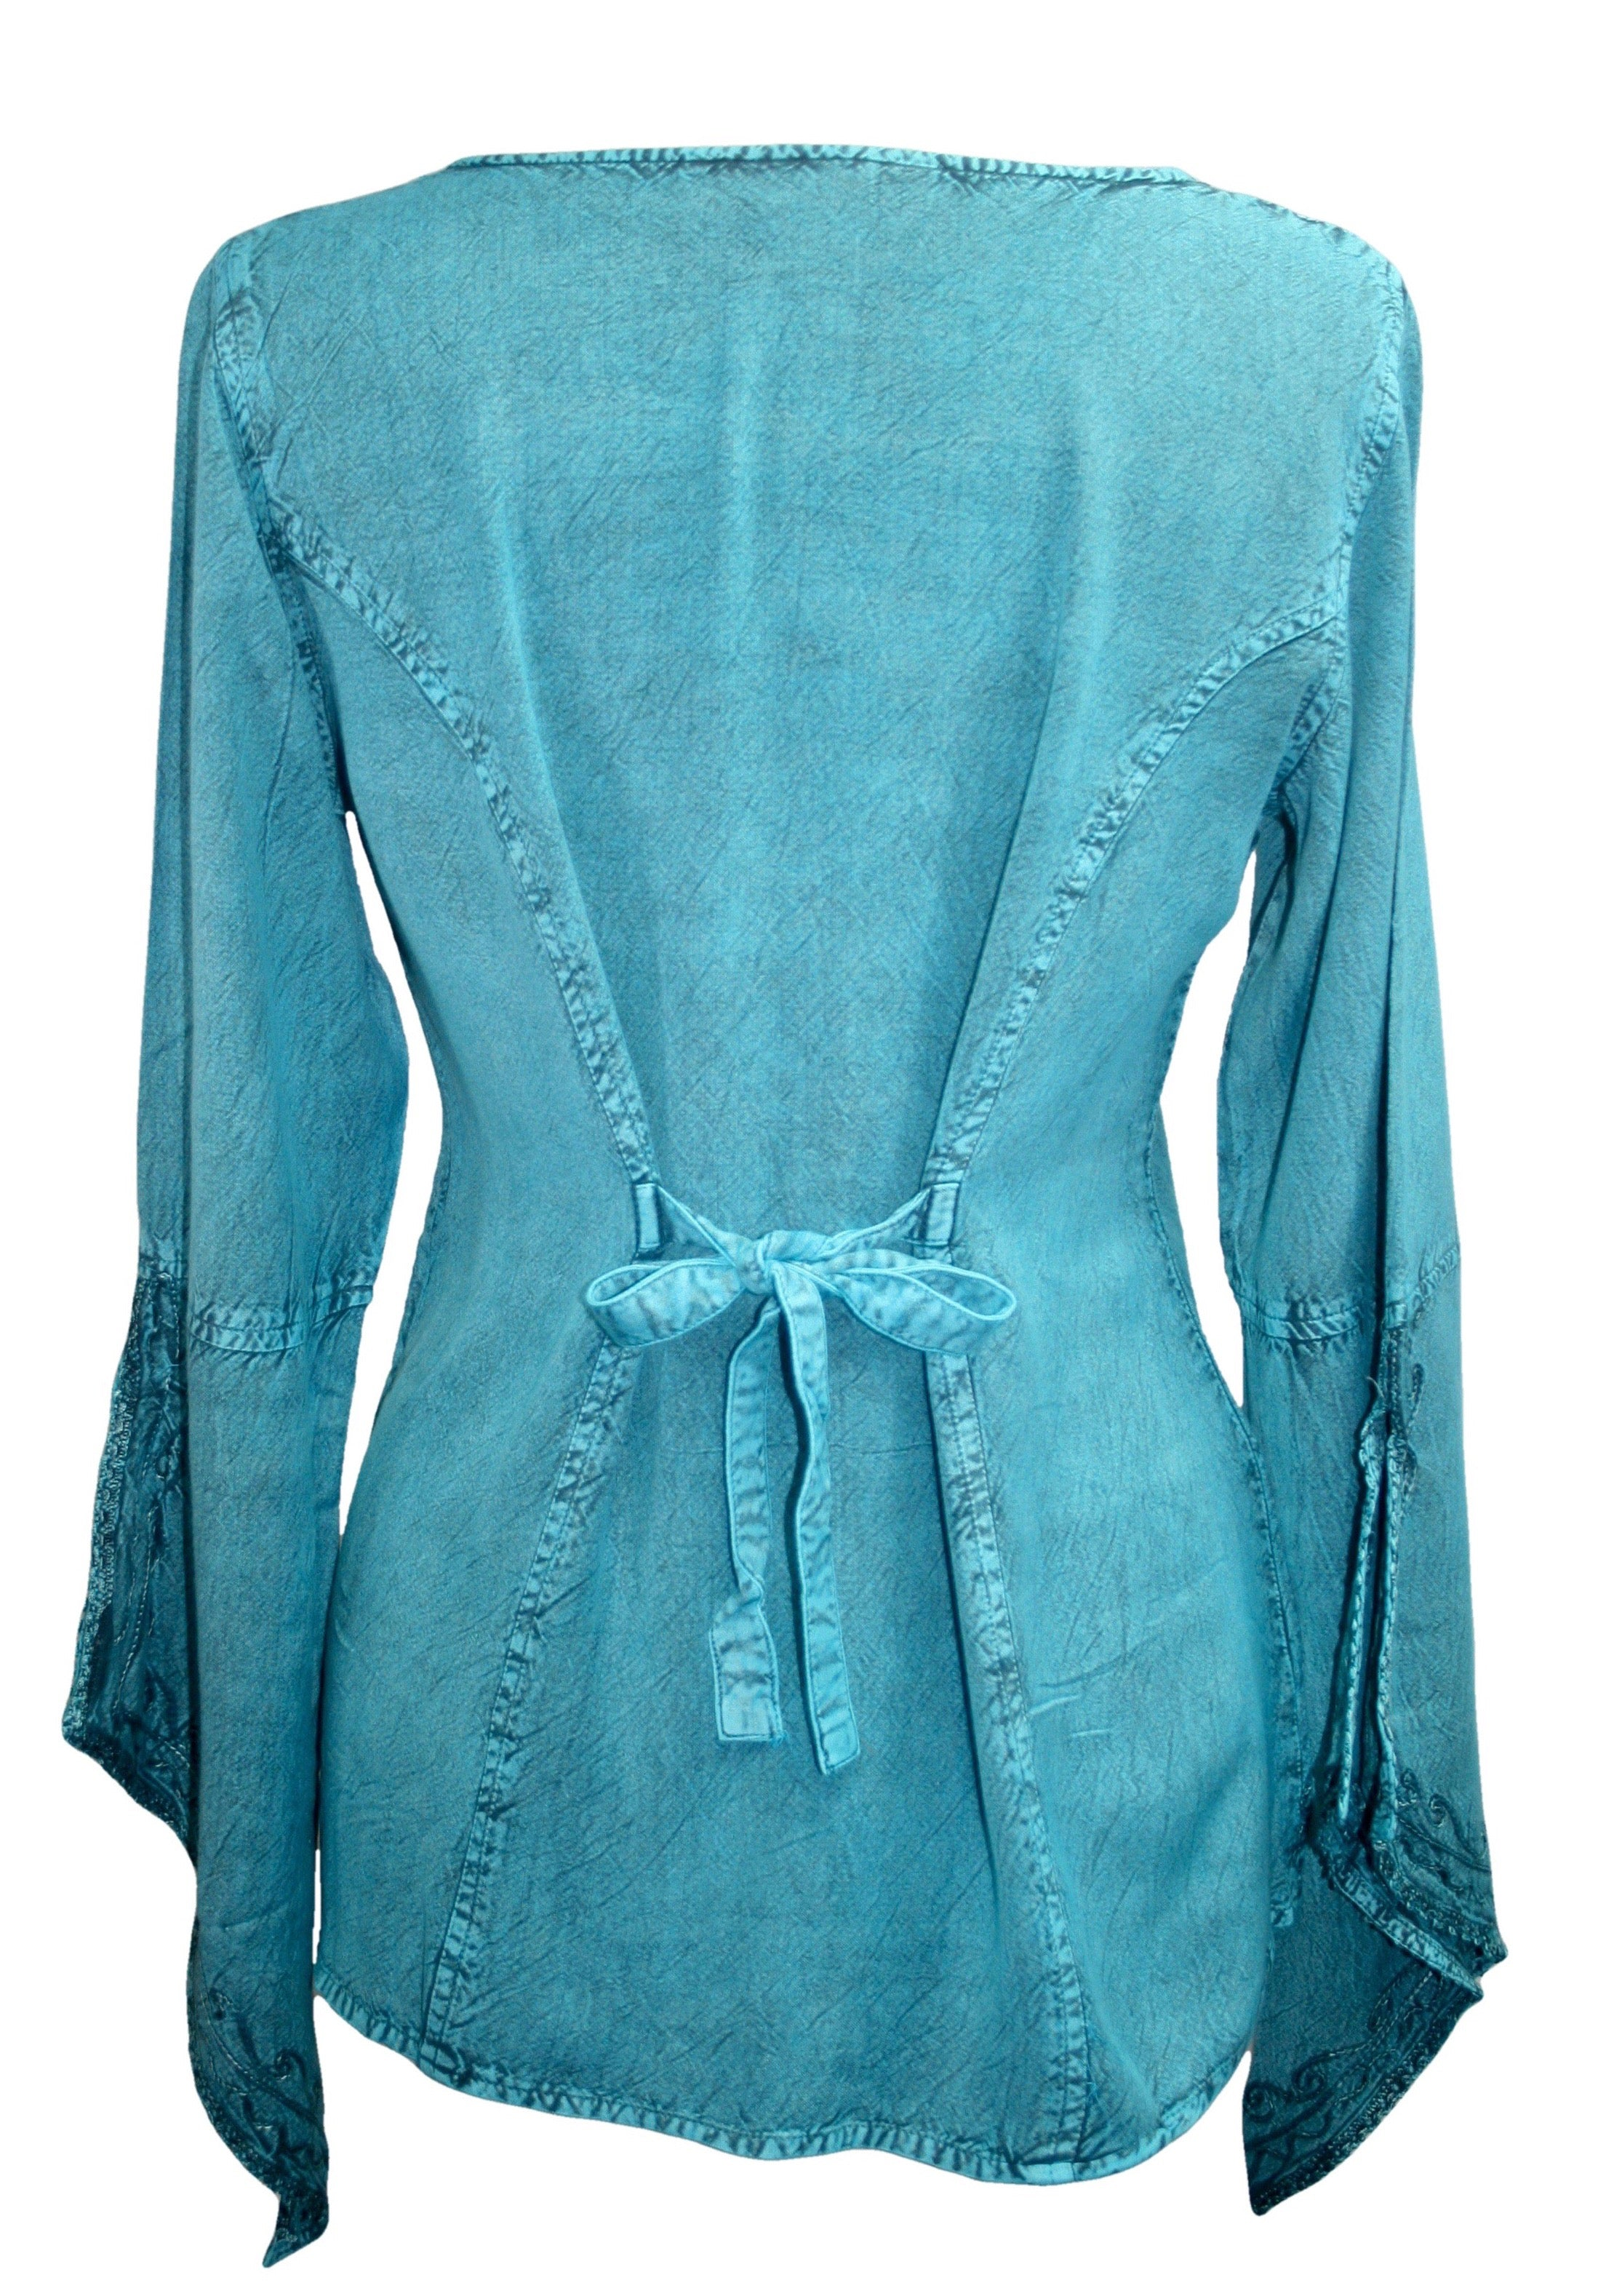 Renaissance Gypsy Bell Sleeve Blouse Top - Agan Traders, Turquoise